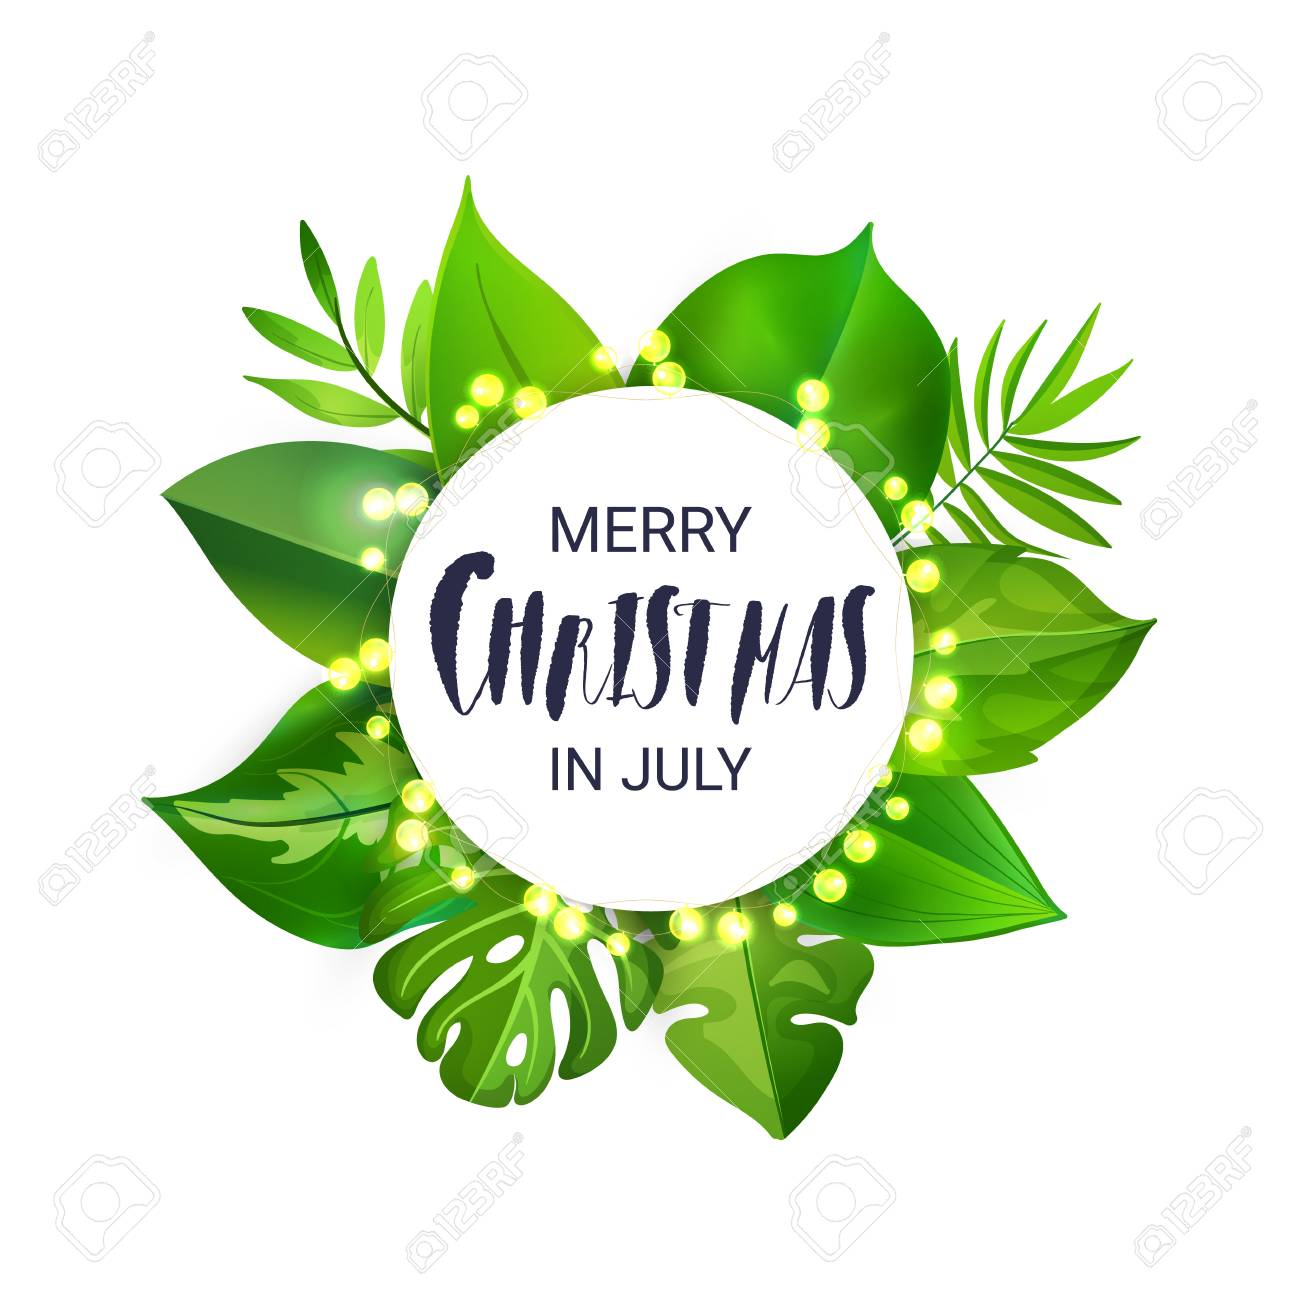 Happy Christmas In July Images.Merry Christmas In July Floral Banner With Luminous Garland And